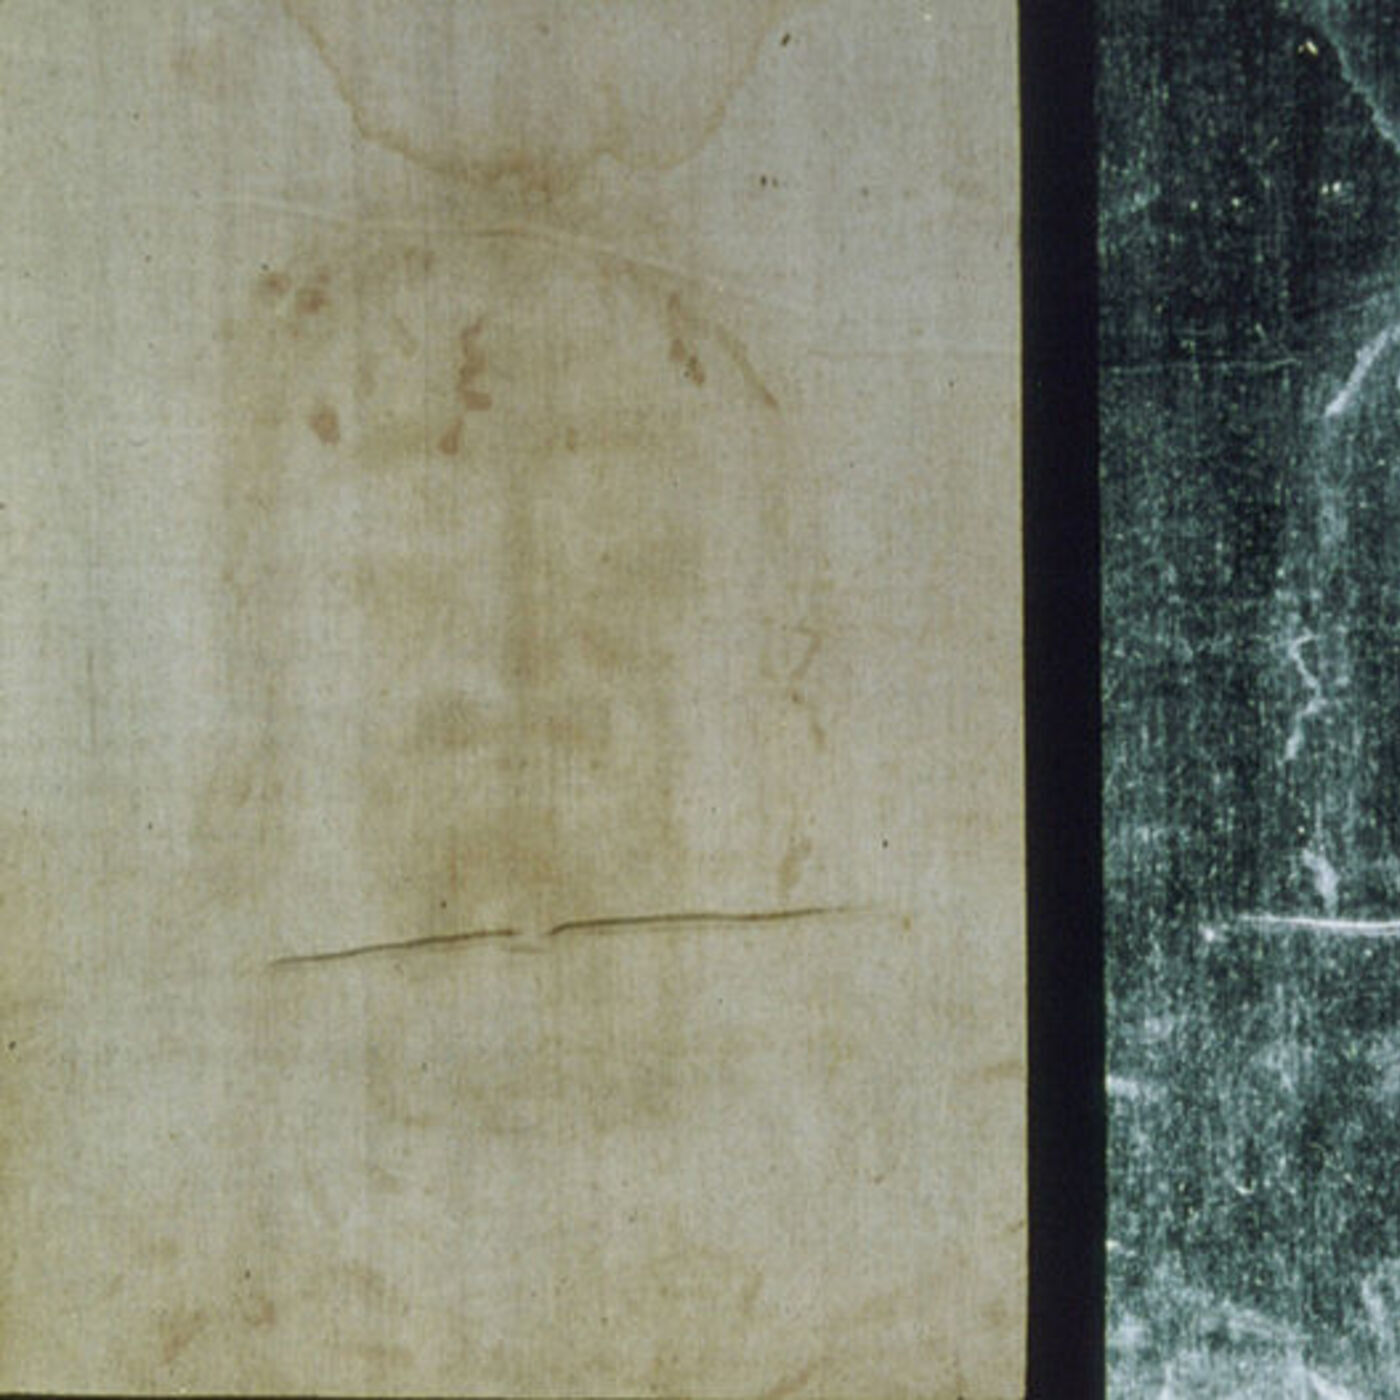 The Shroud of Turin: What Scientists Discovered